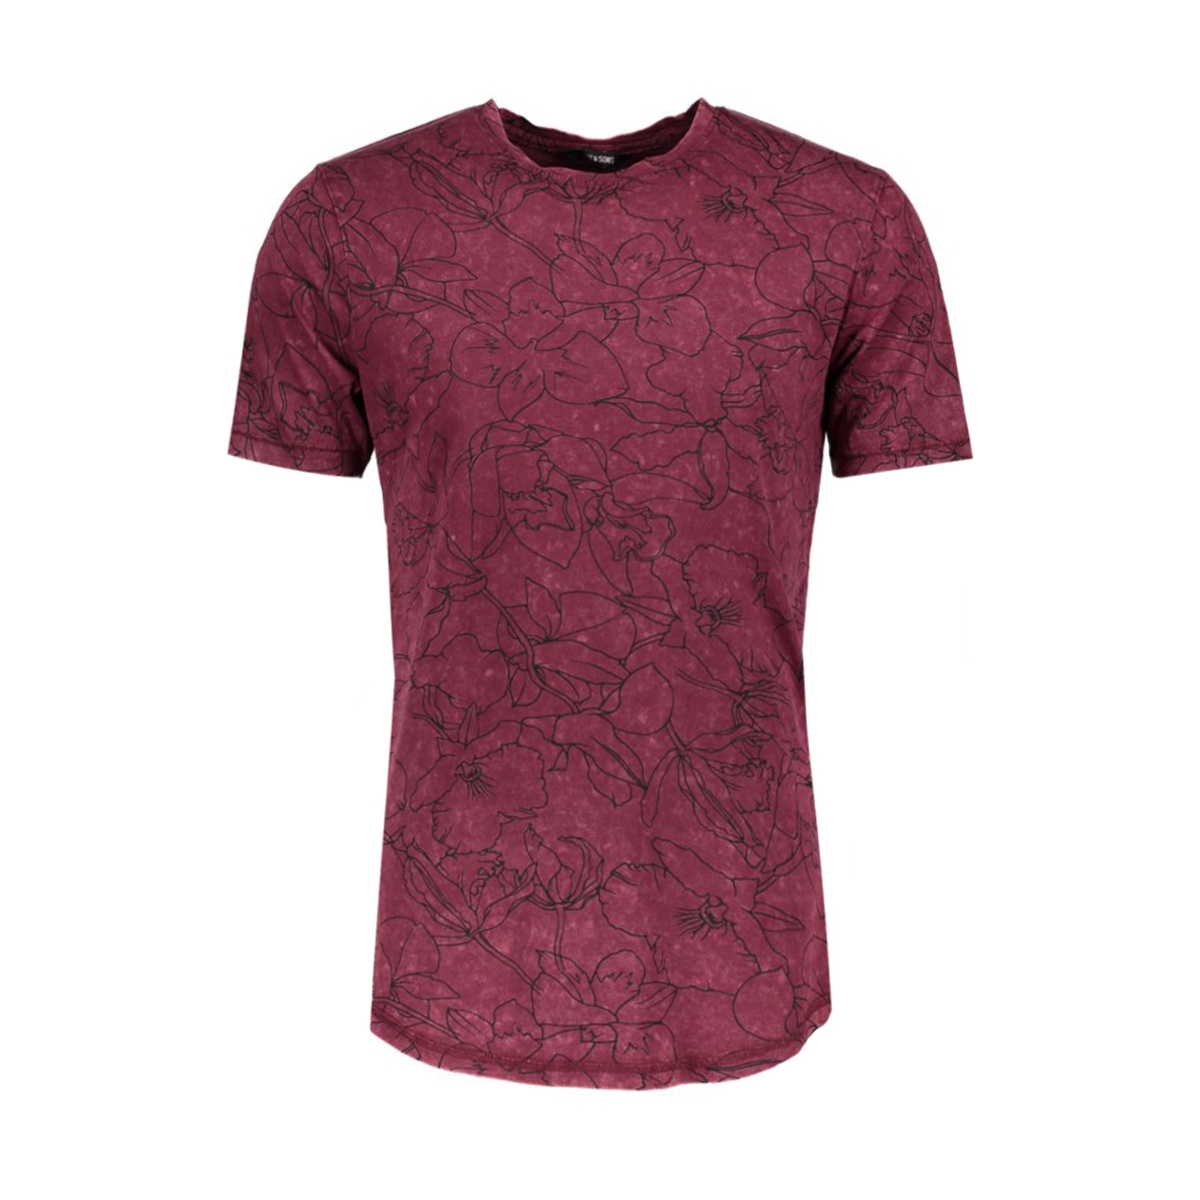 onsandre fitted tee 22004603 only & sons t-shirt tawny port